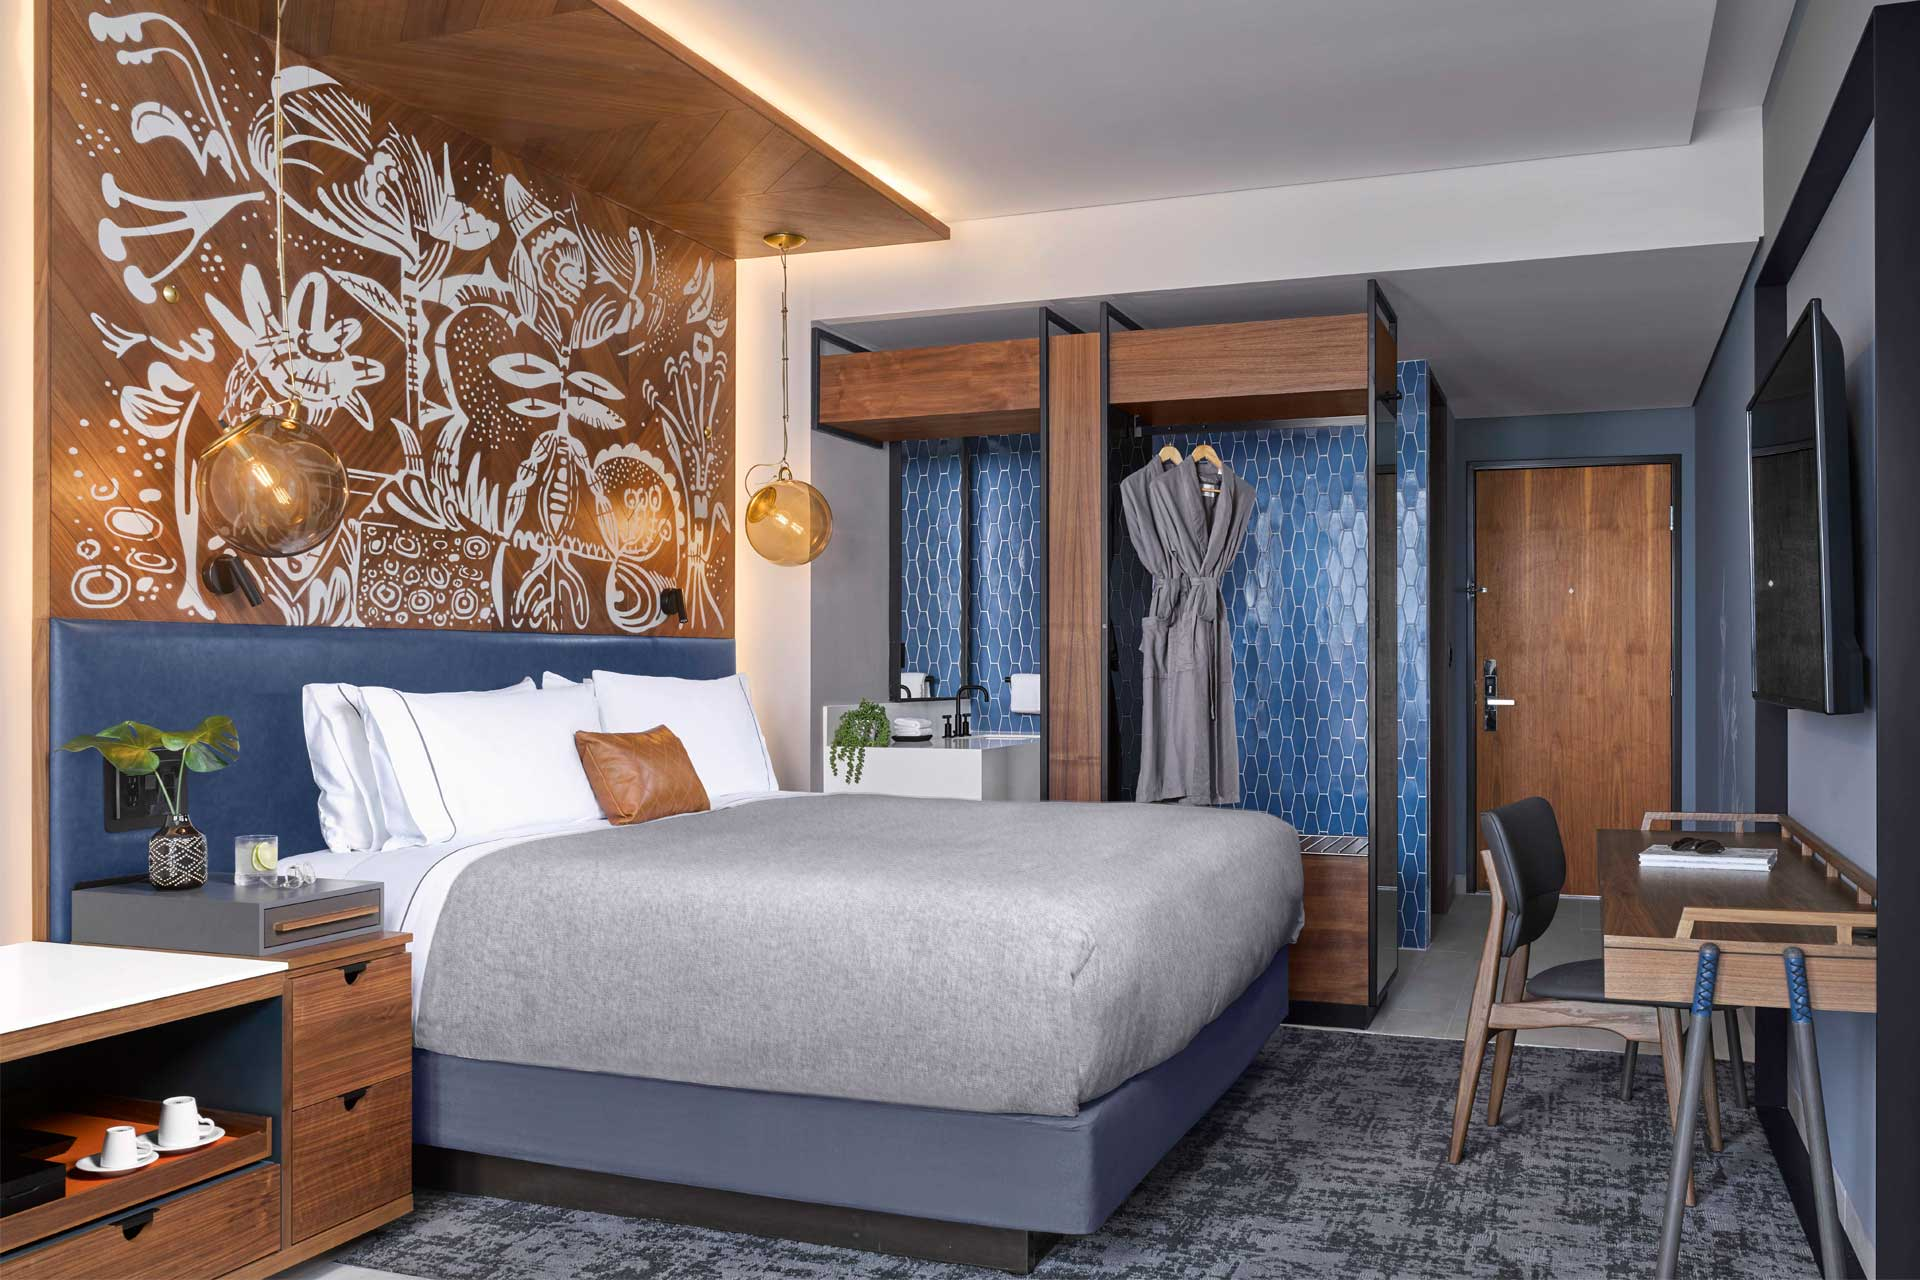 The guestrooms at Canopy by Hilton La Isla